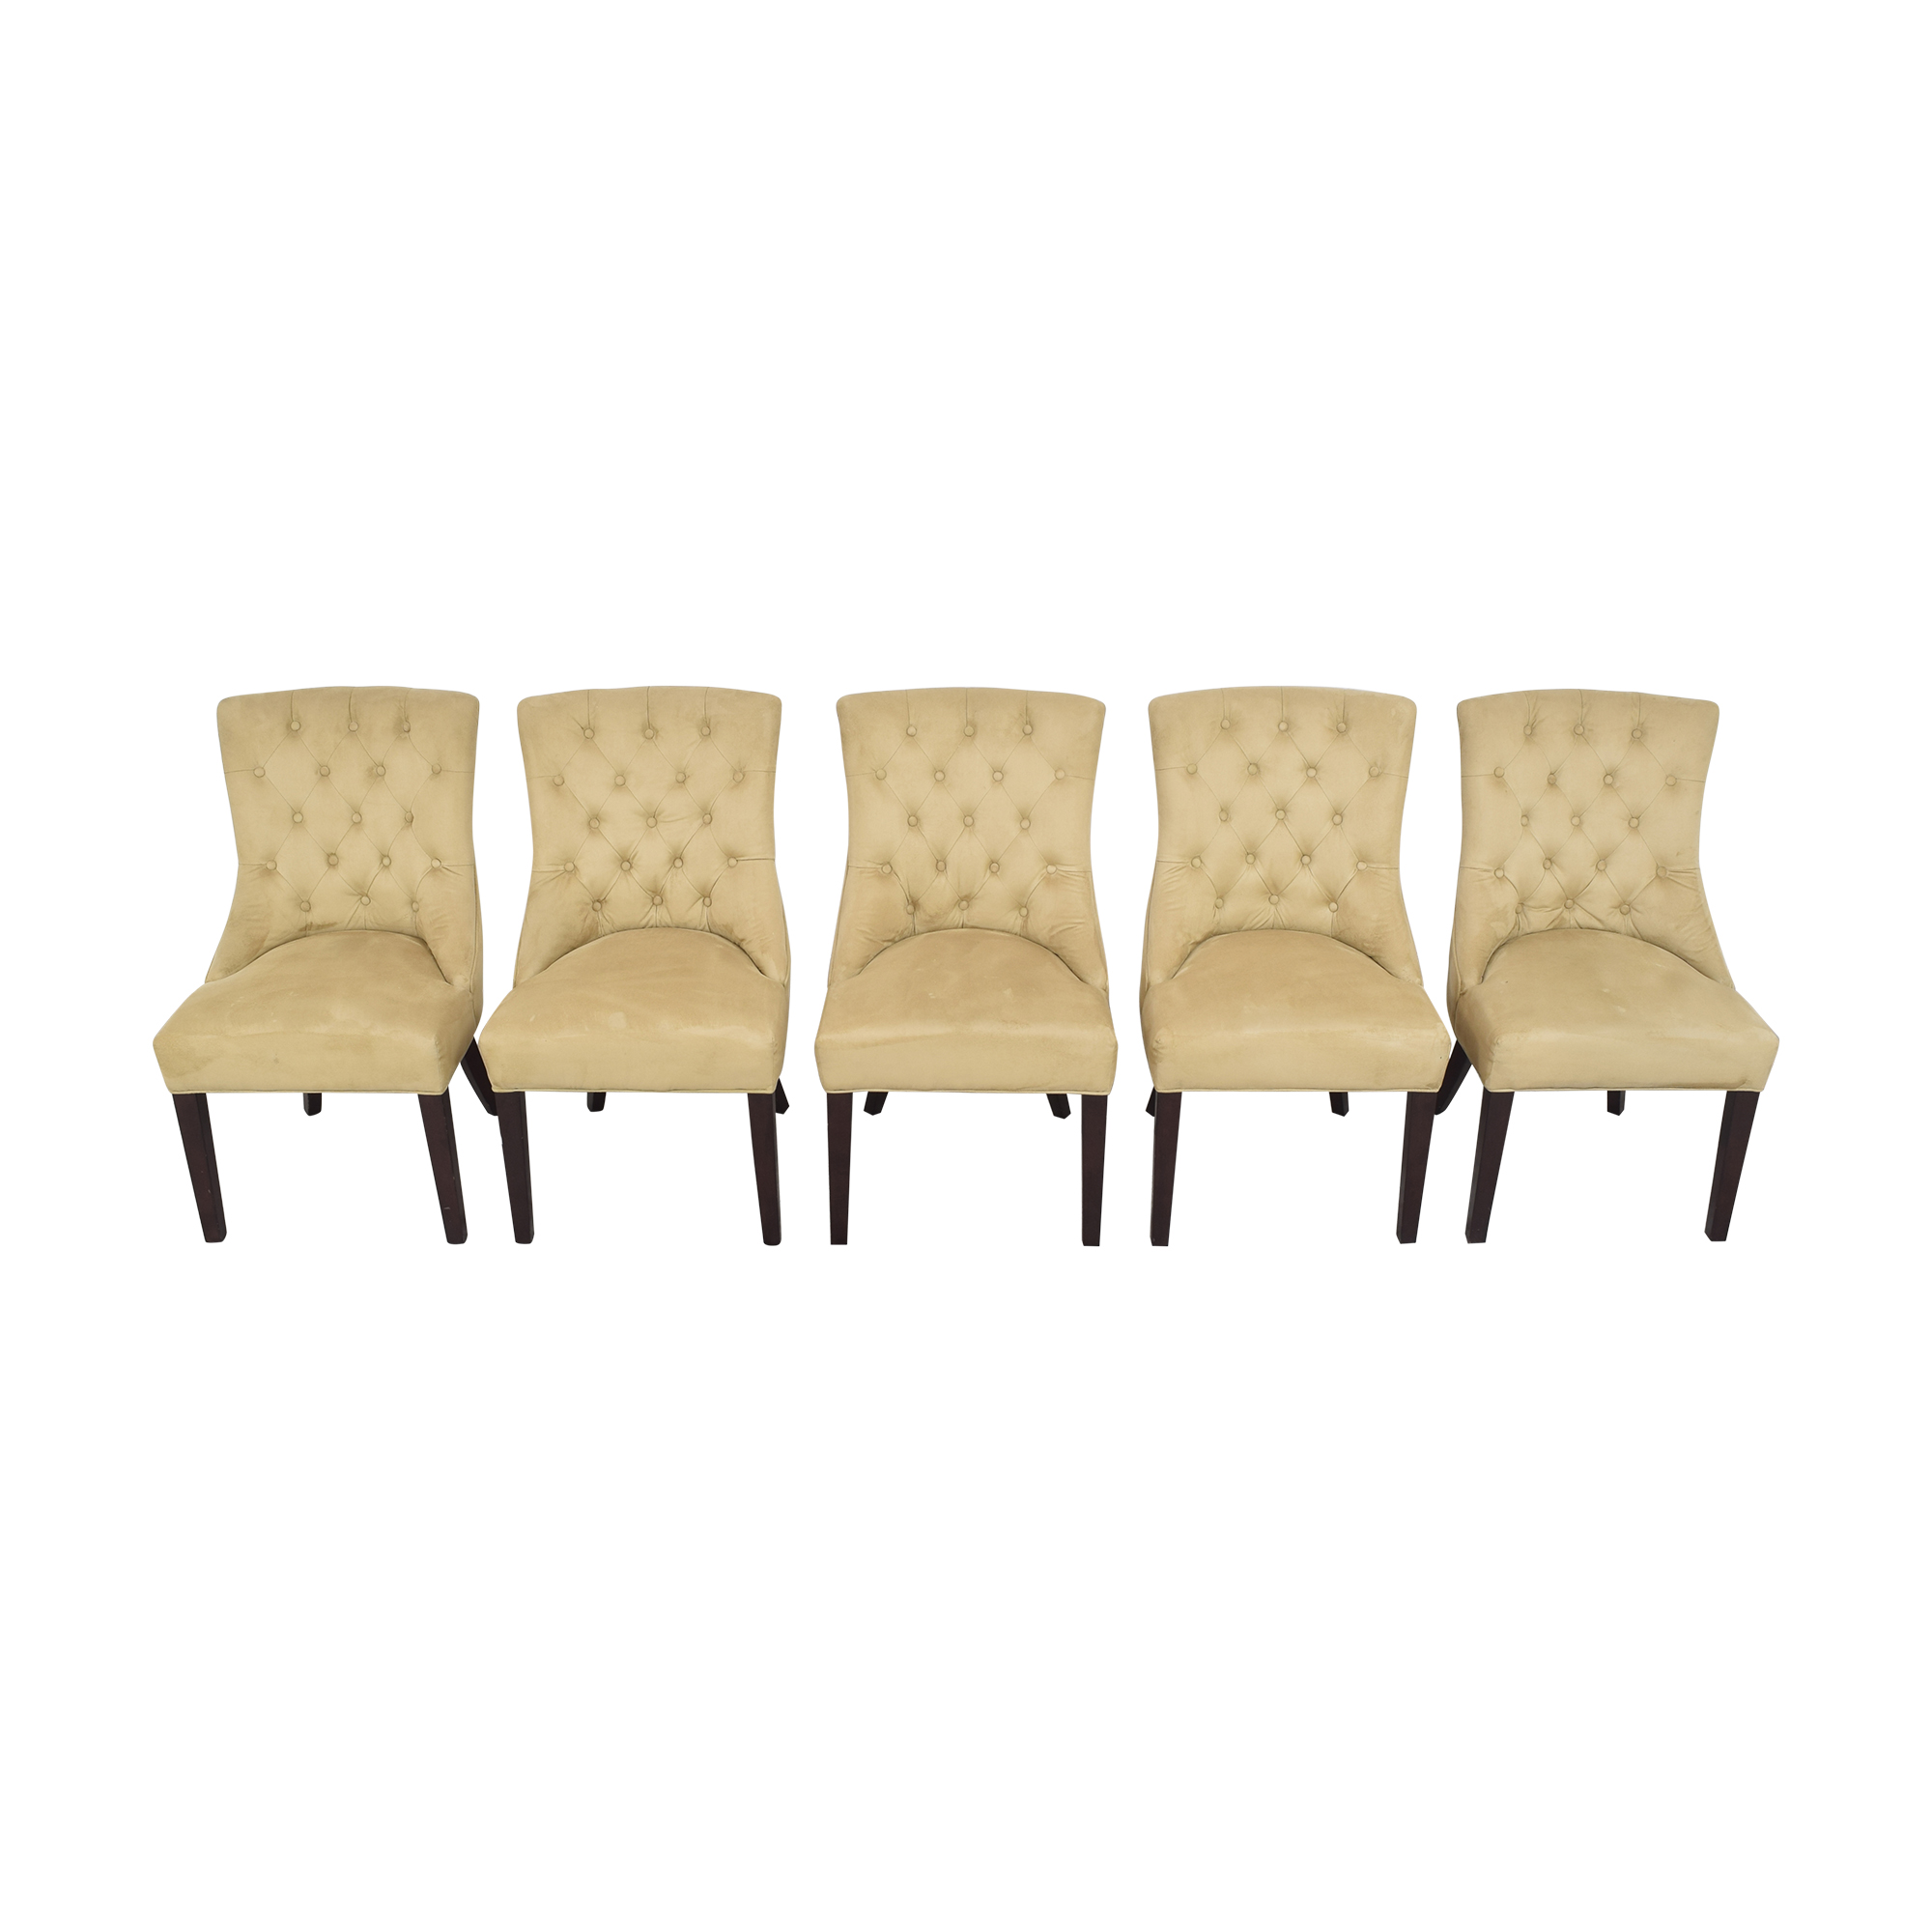 buy Pottery Barn Pottery Barn Hayes Tufted Dining Chairs online